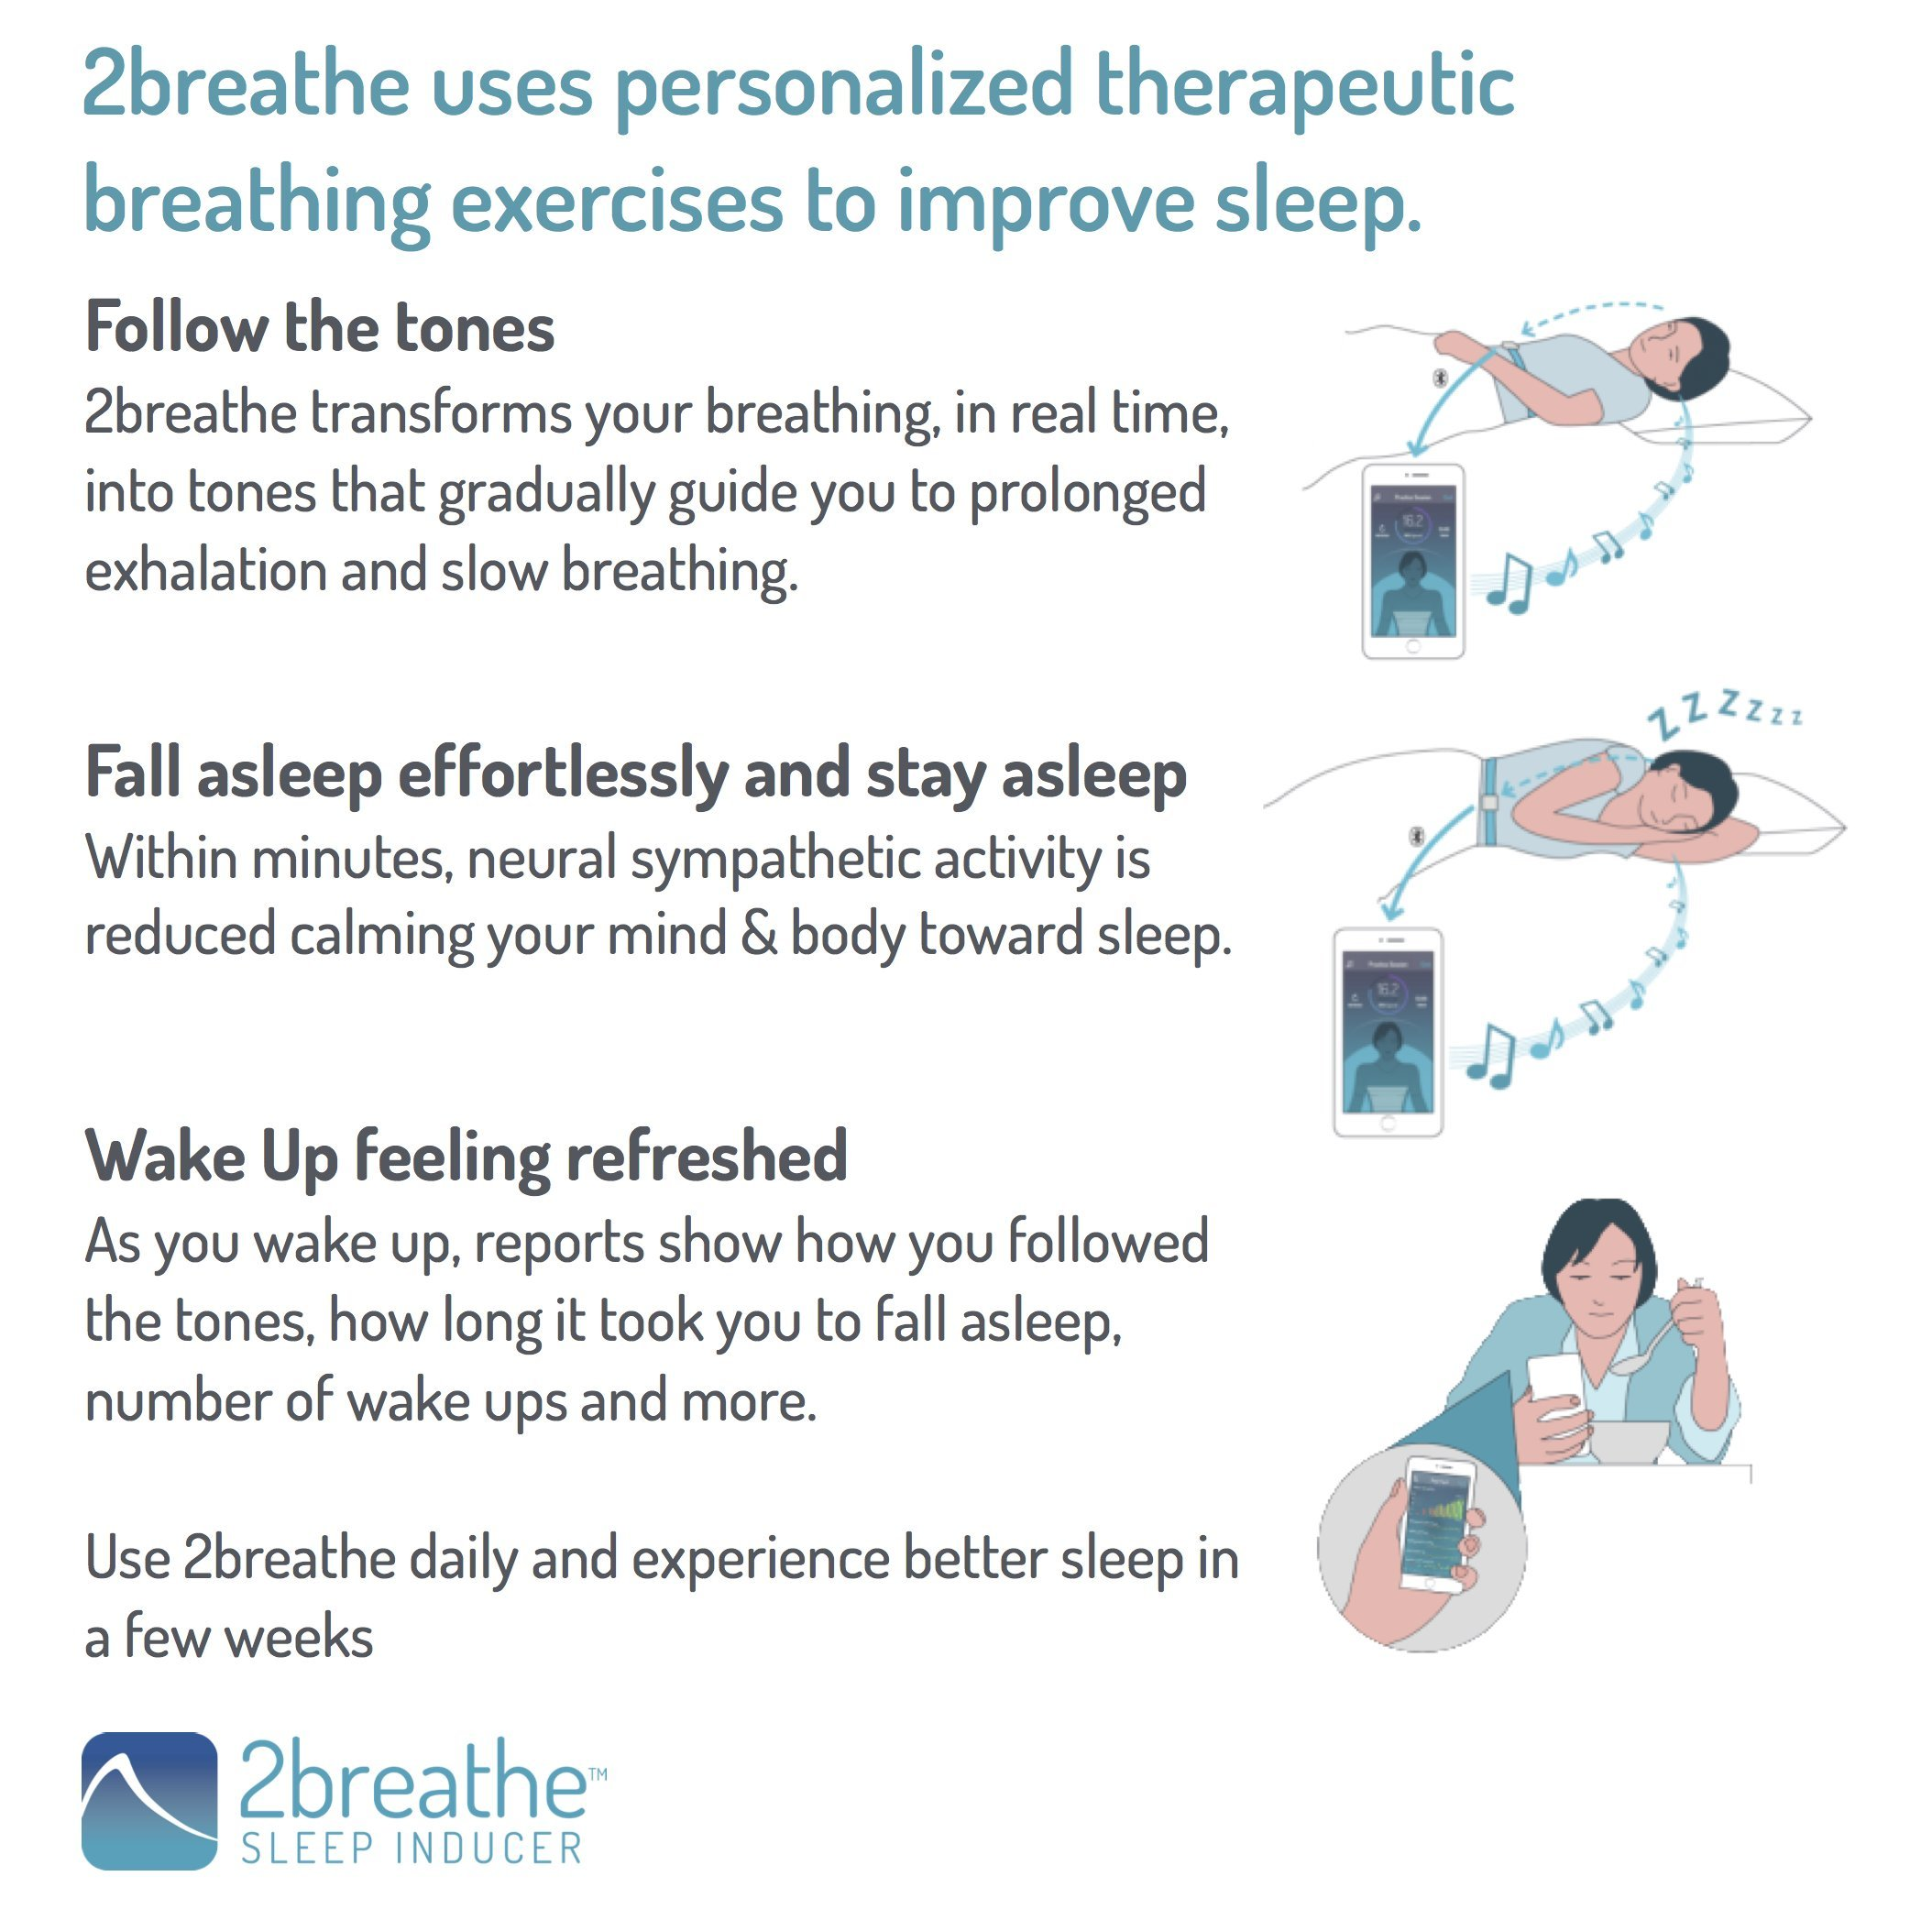 2breathe Sleep Inducer - Sleep Sound System. Smart Device and Mobile App to Induce Sleep. Guides You to Slow Breathing with Prolonged Exhalation using Sounds. Natural Sleep Therapy Machine by RESPeRATE (Image #8)